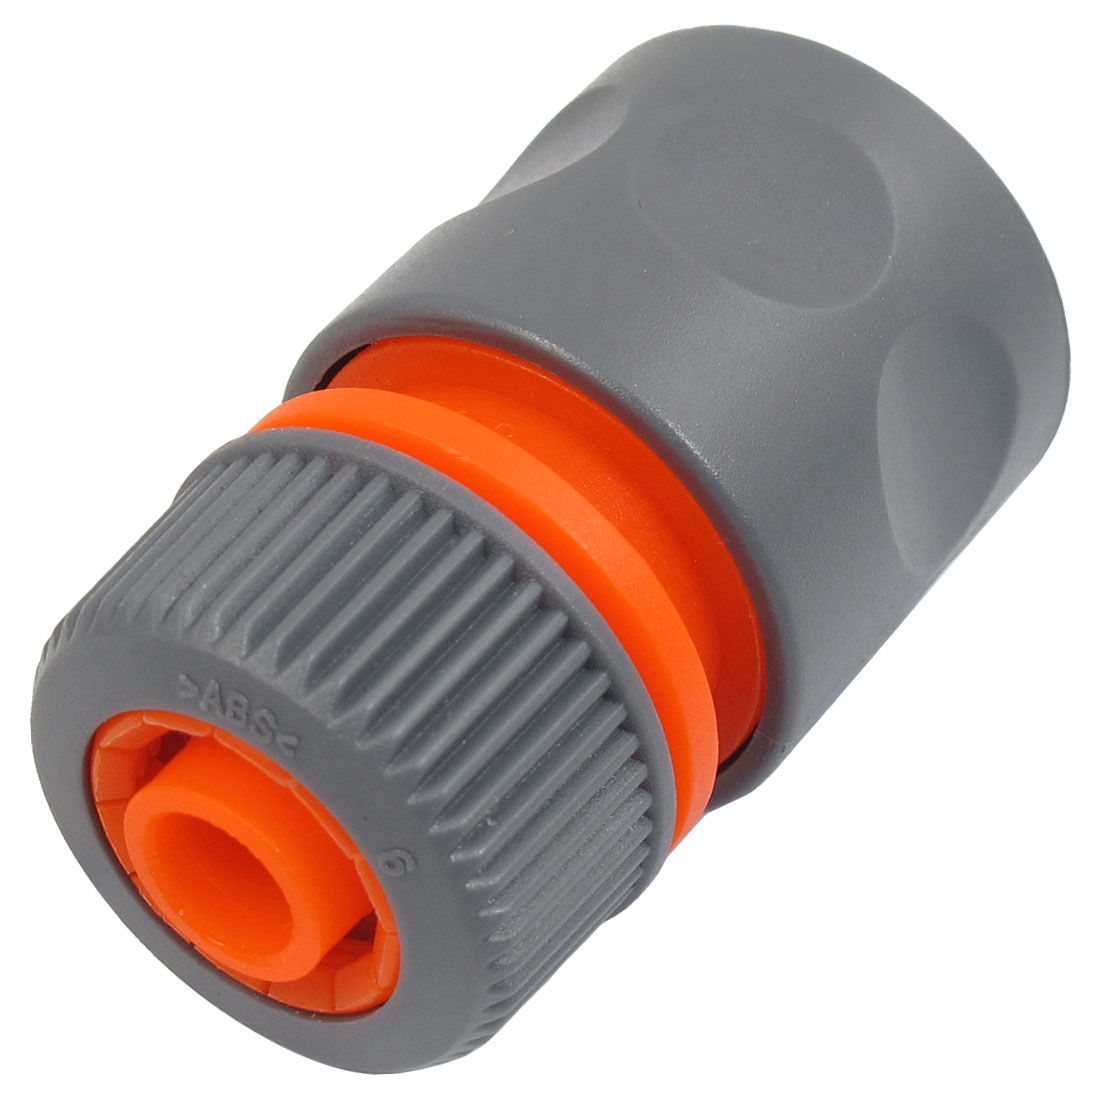 17mm Connector Plastic Quick Click Coupler for 12mm x 18mm Water Hose